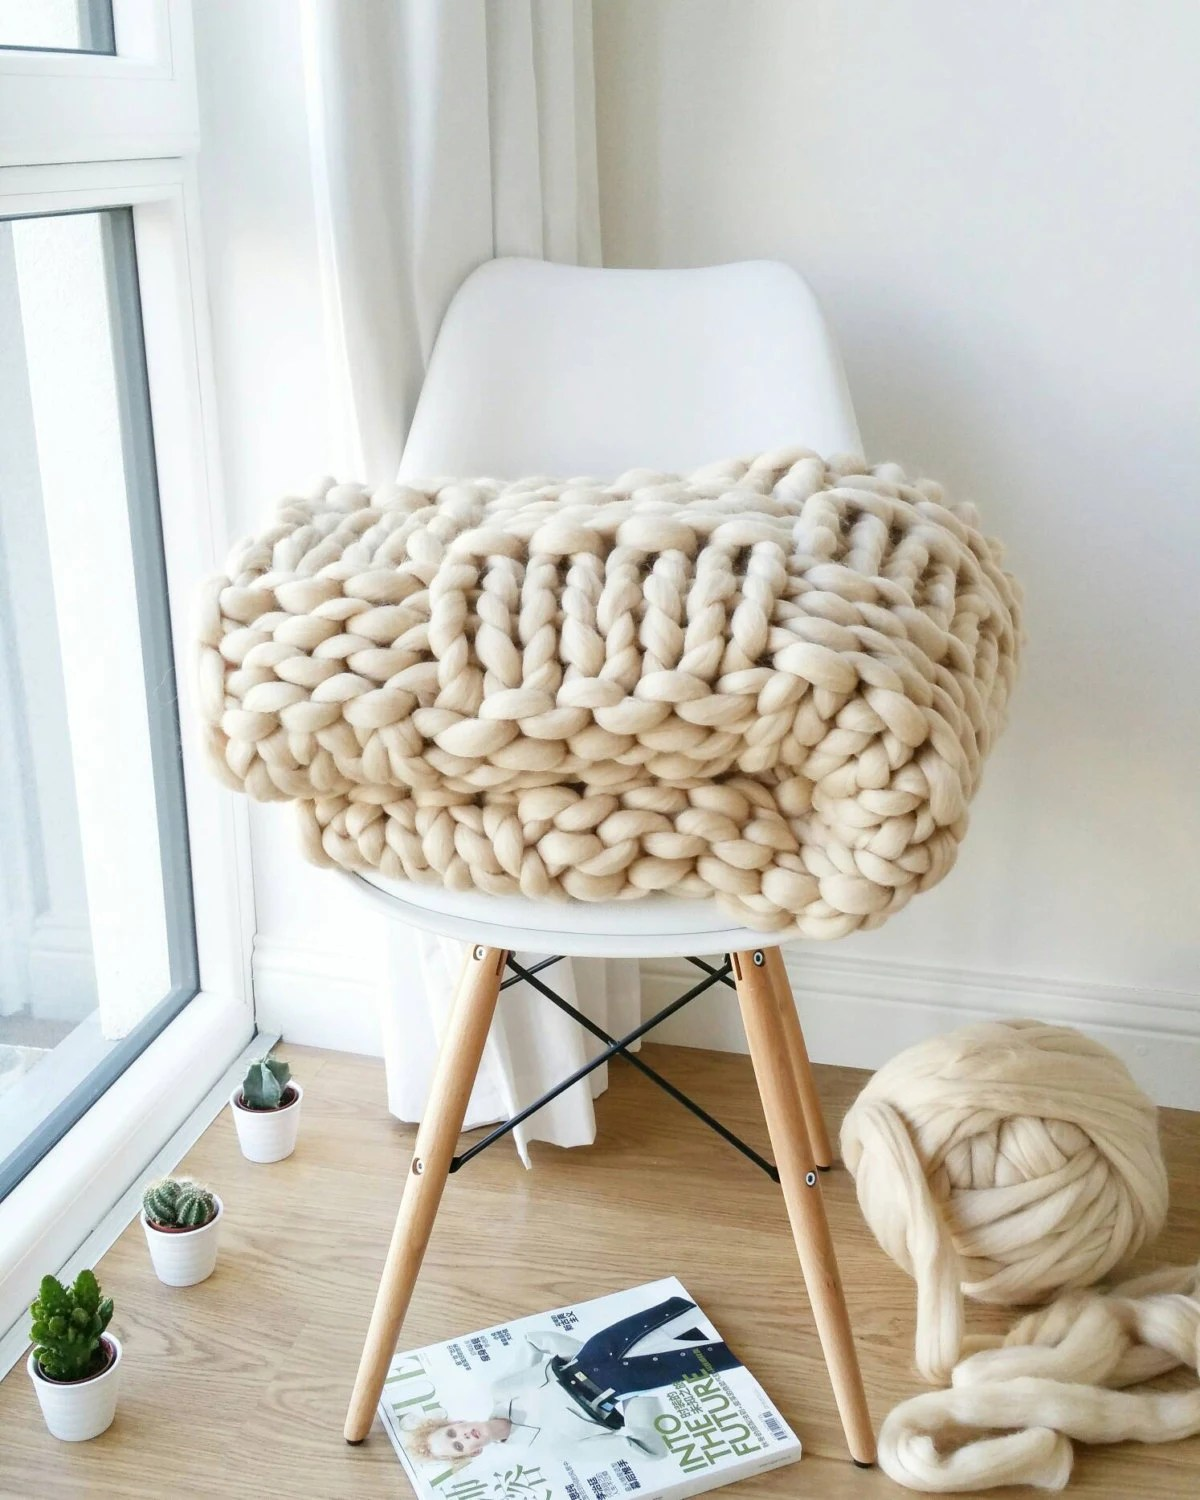 Sofa Bed Giant Malaysia Sale Chunky Knit Blanket Luxury Bed Runner Giant Cream Throw